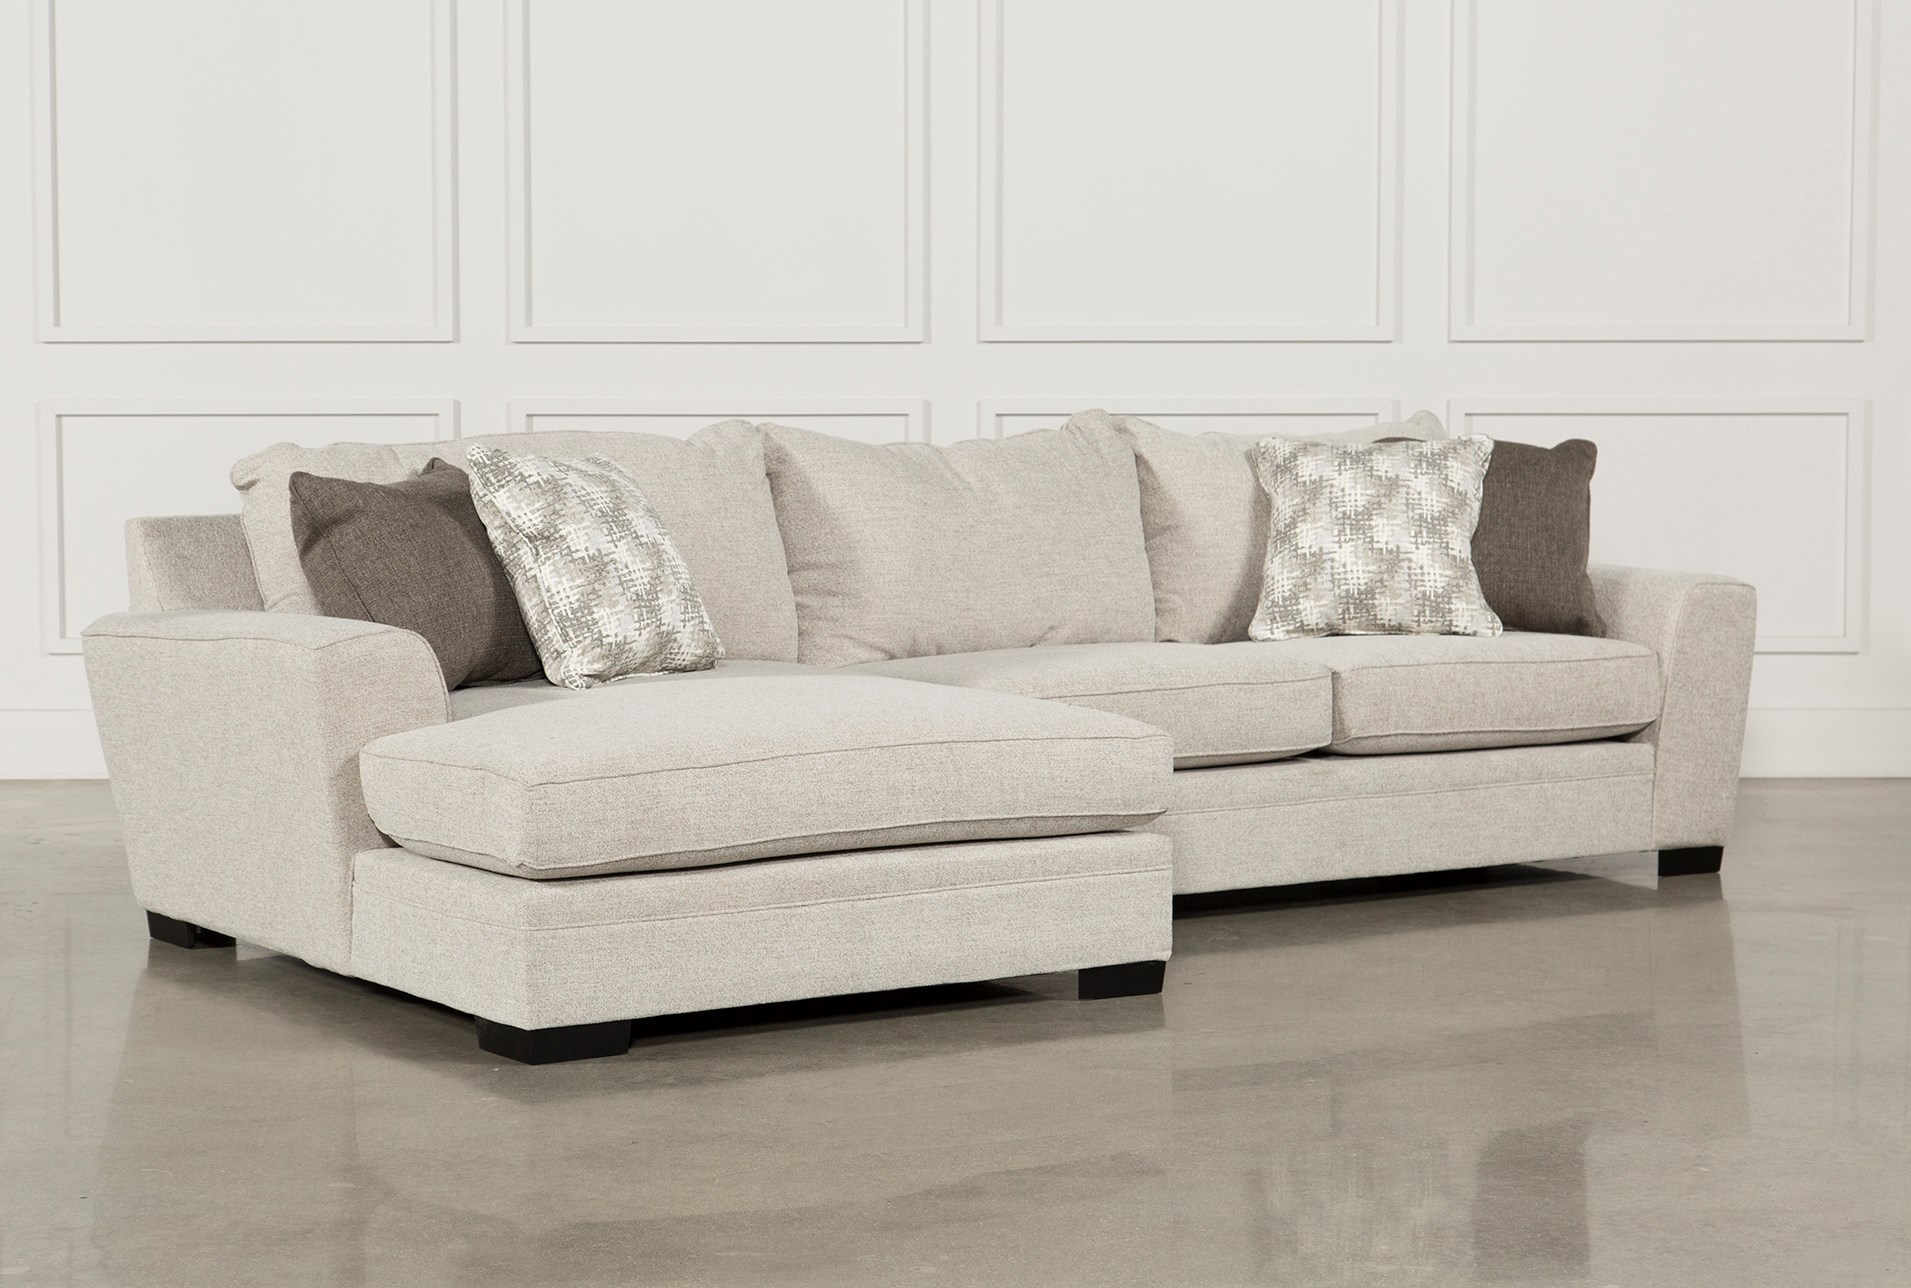 decorating sectional review sofa new oversized design cuddle sofas of cozy couch round to ideas best unique